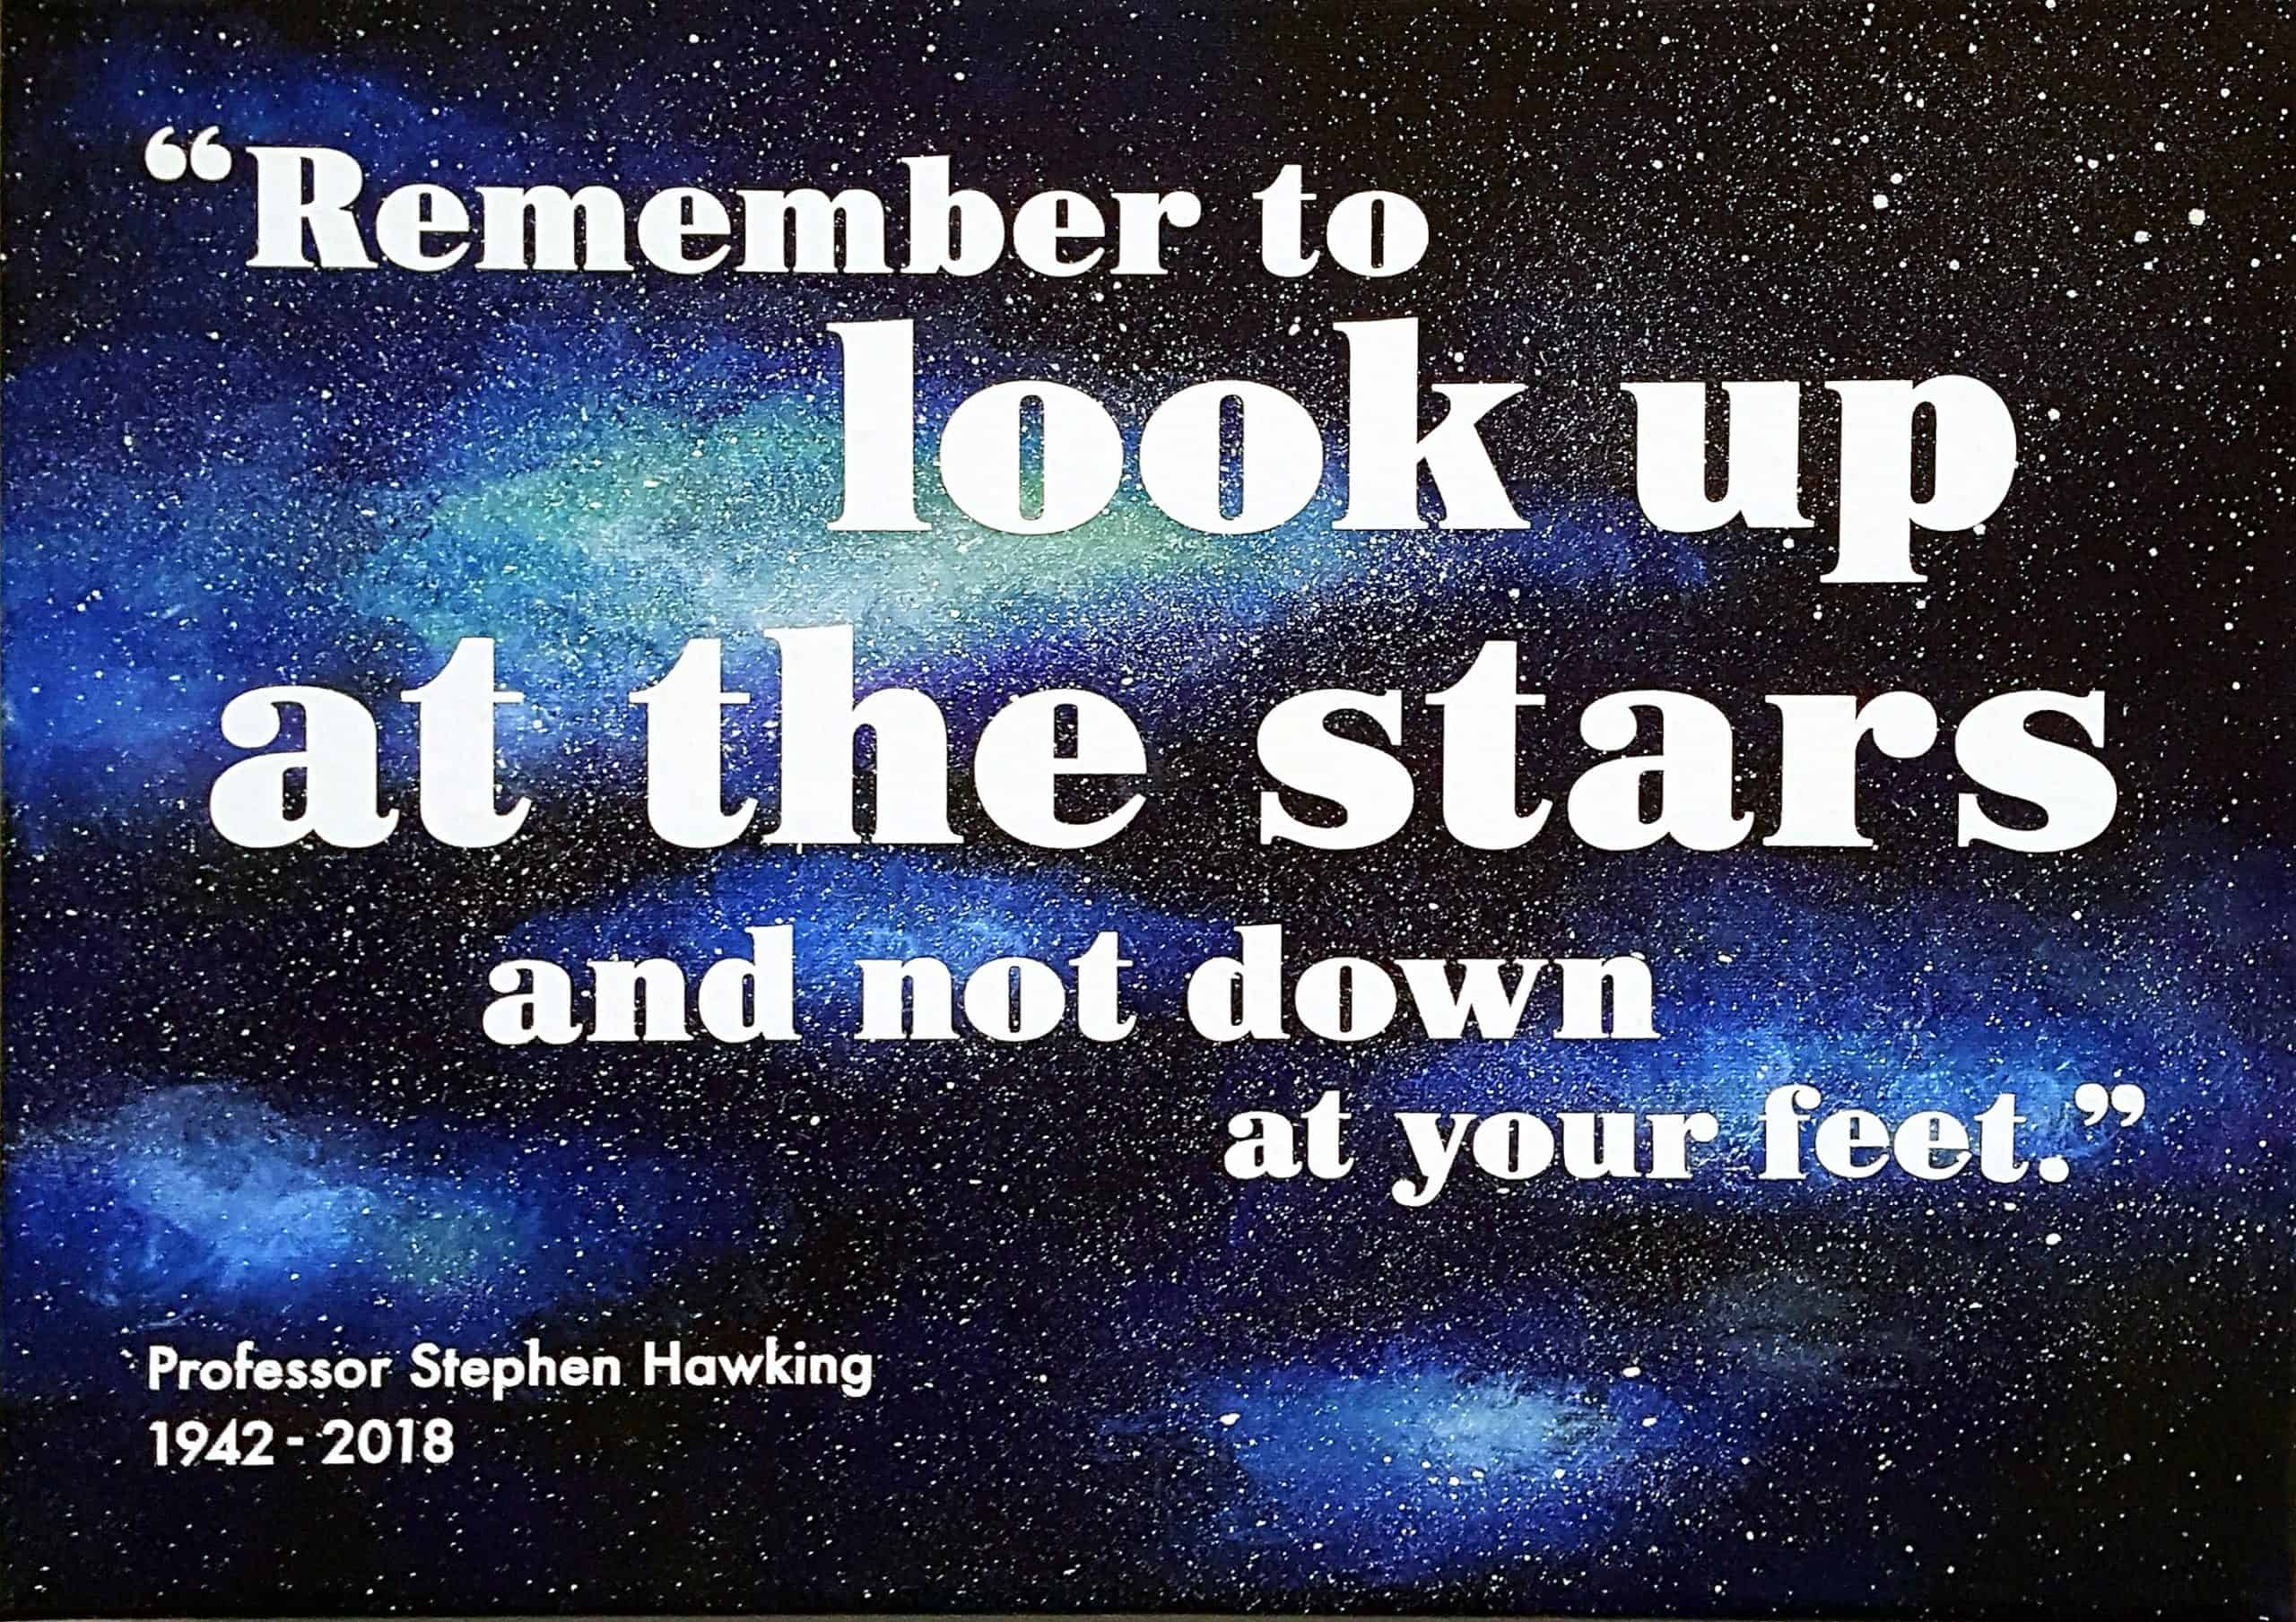 Painting for the Rowan Humberstone charity art exhibition - Prof Stephen Hawking quote